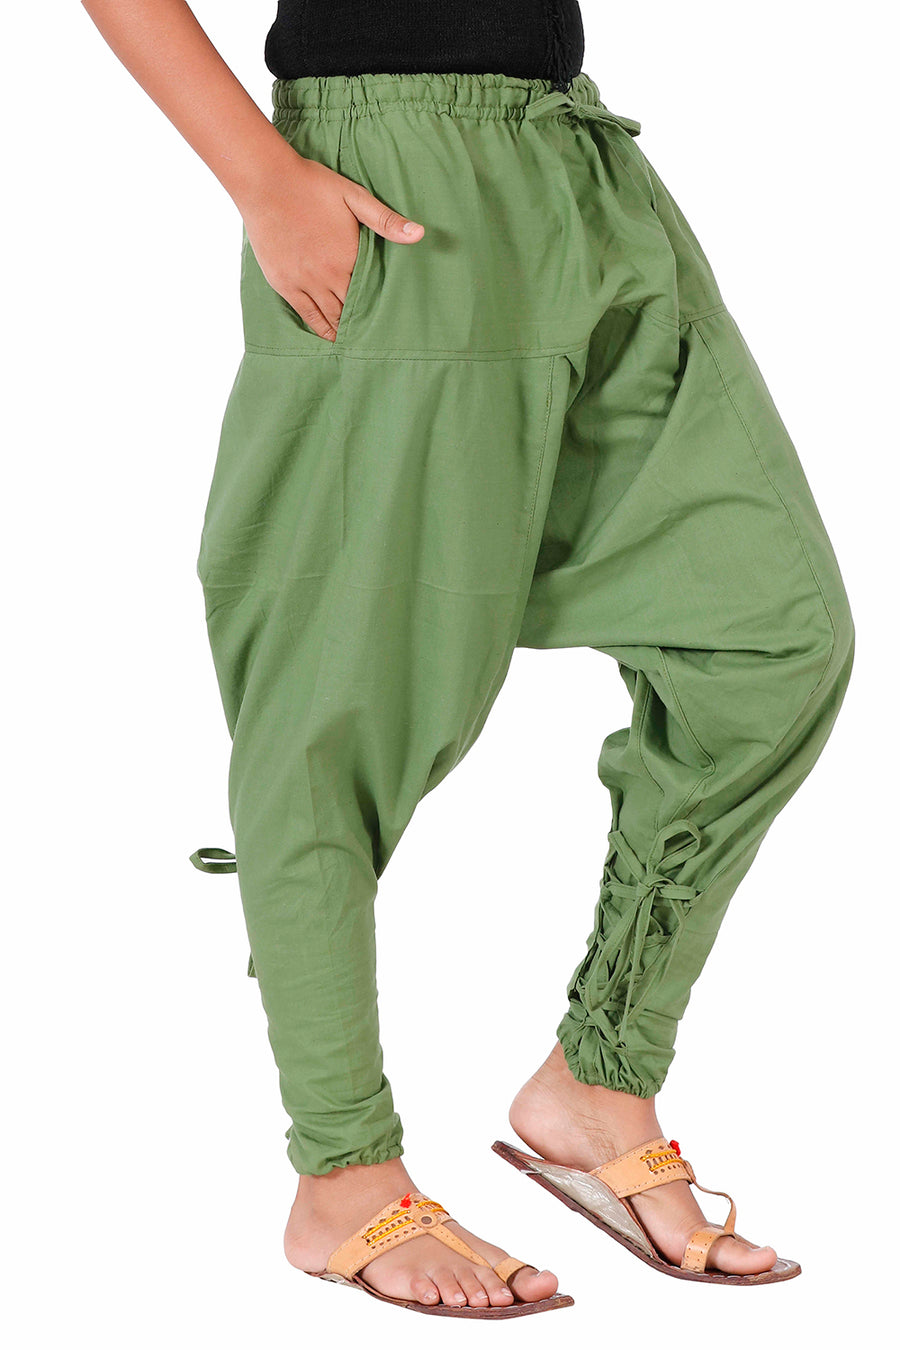 Kids Harem Pants, Kids Parachute Pants, Green Harem Pants for kids, mc hammer pants for kids, slouch pants kids, cotton harem pants kids, kids harem sweatpants,kids drop crotch pants, boys harem pants, girls harem pants, harem pants for kids boys,boys pants, girls harem pants, parachute pants girls, parachute pants boys